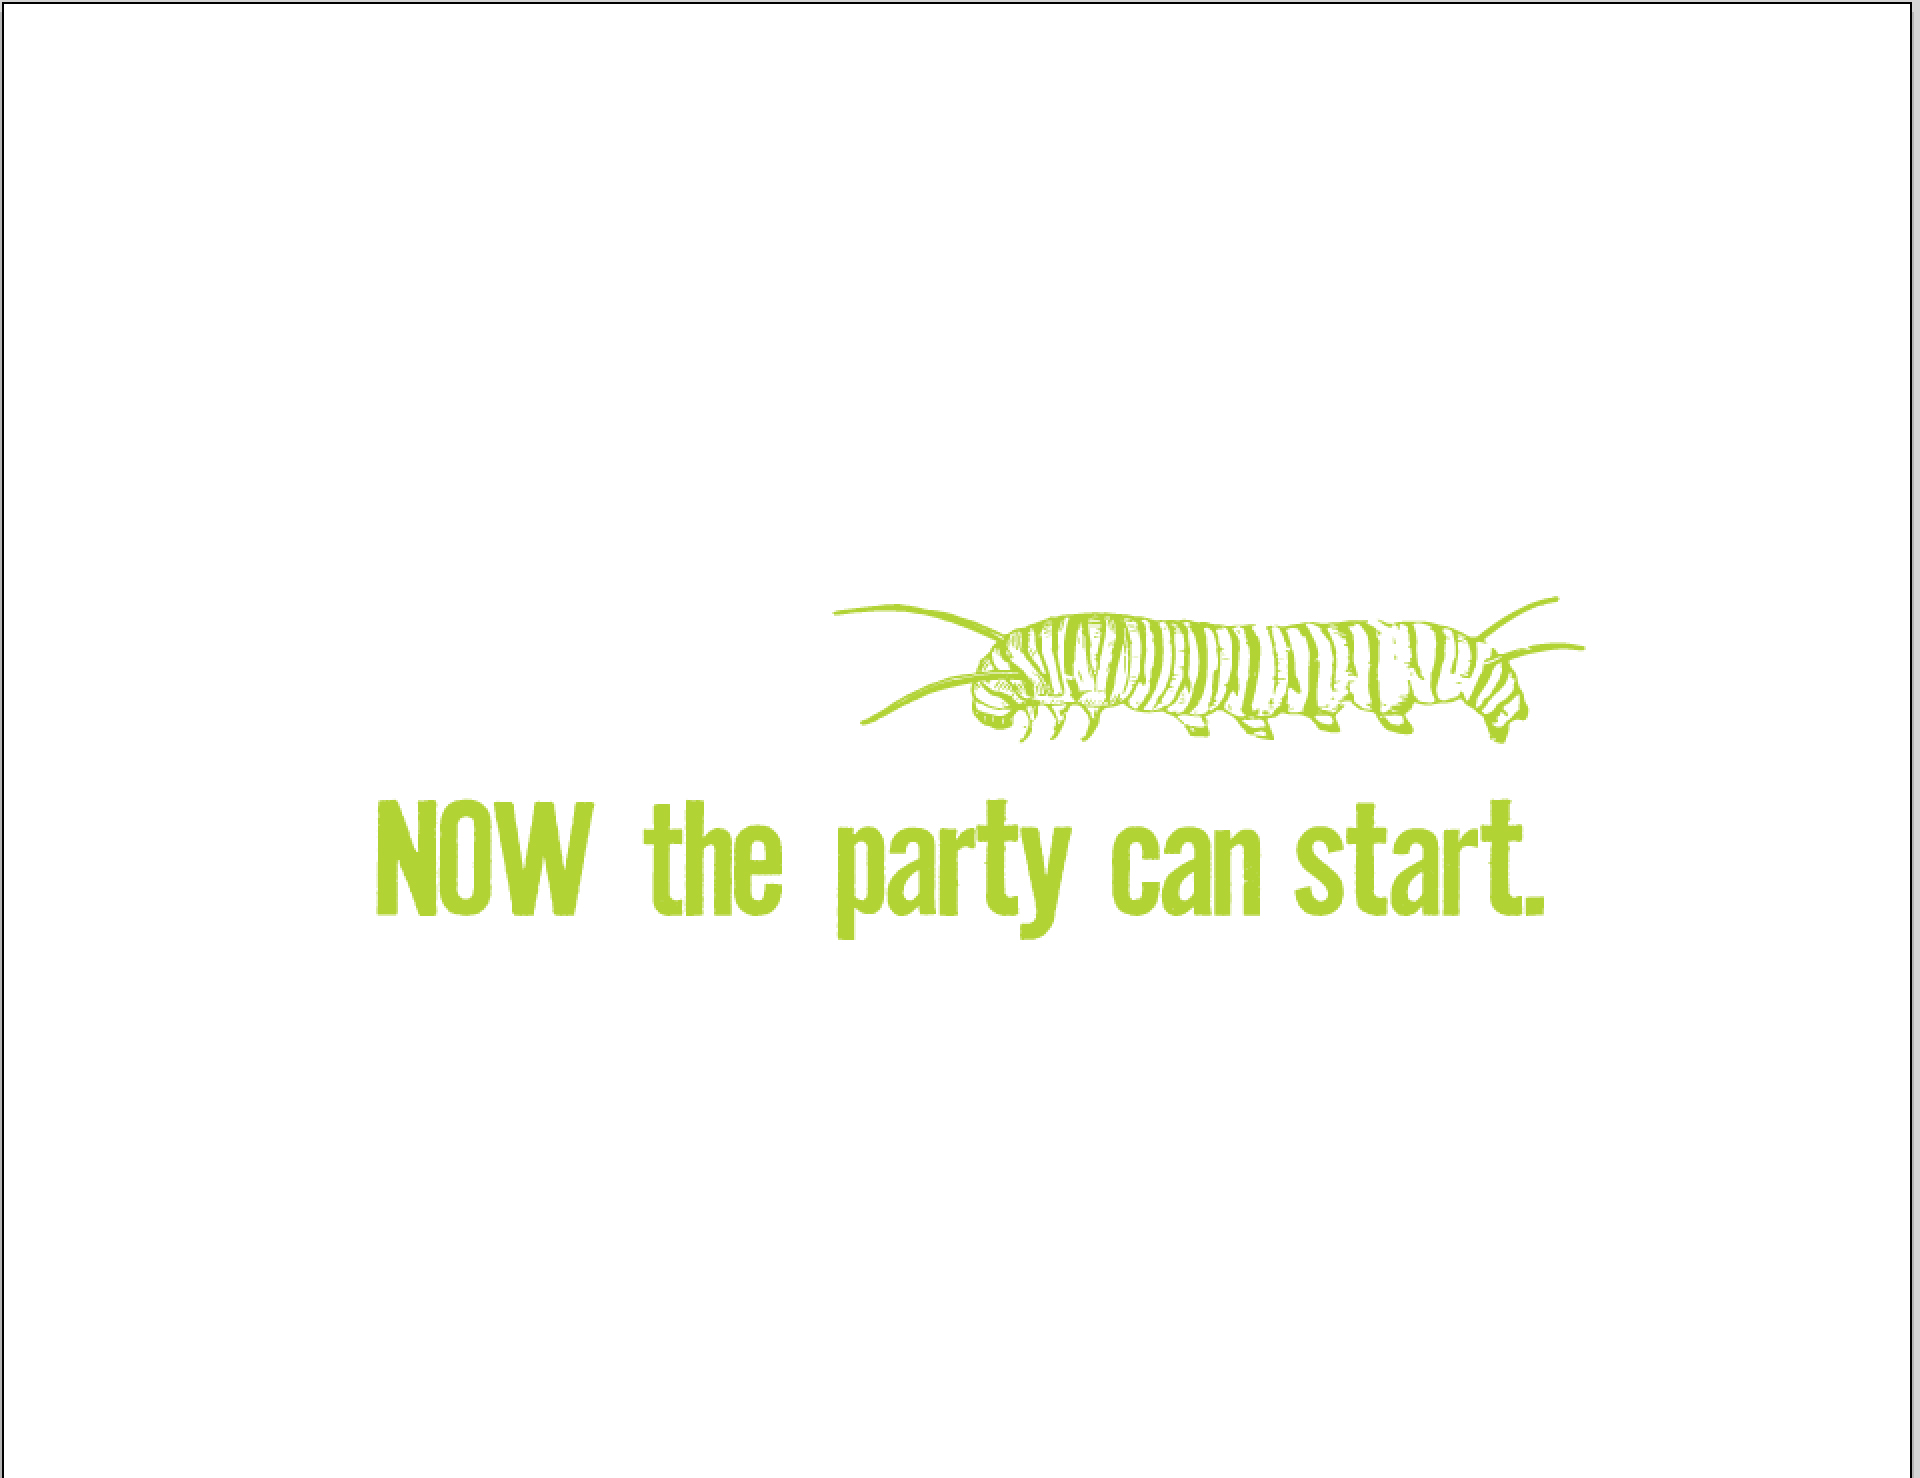 NOW the party can start